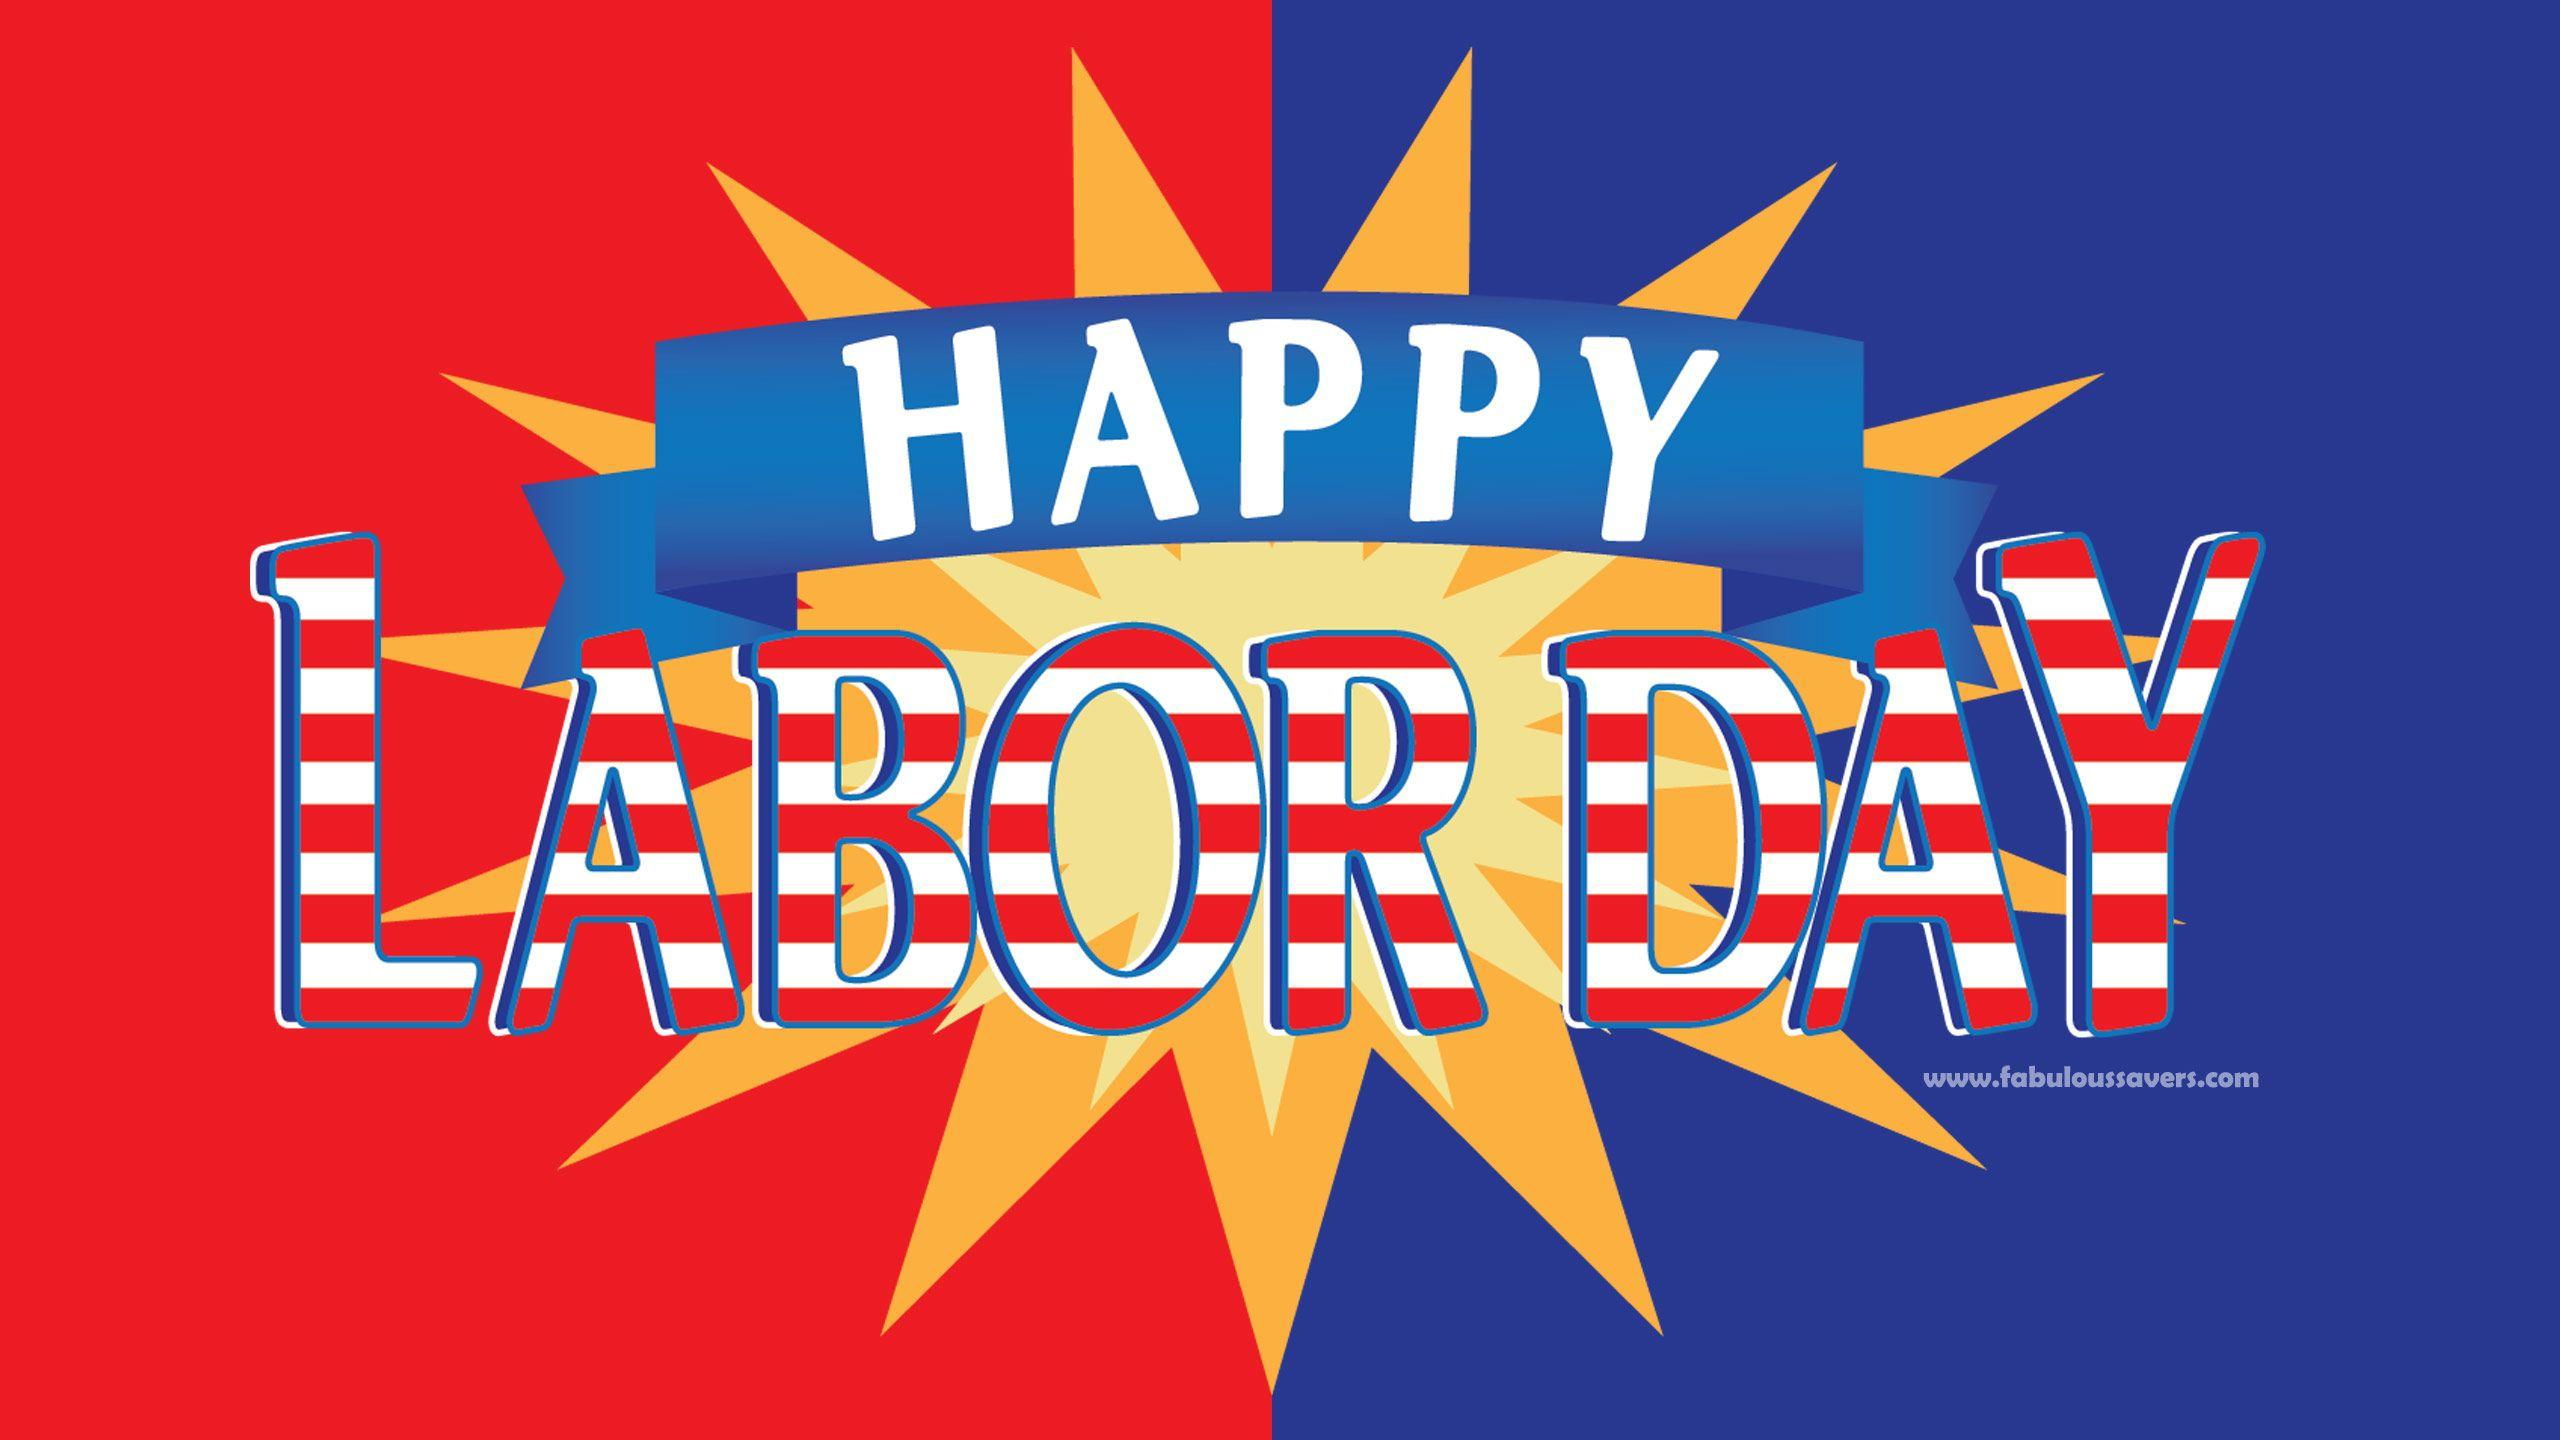 Labor Day HD Wallpapers | Free Computer Desktop Wallpapers